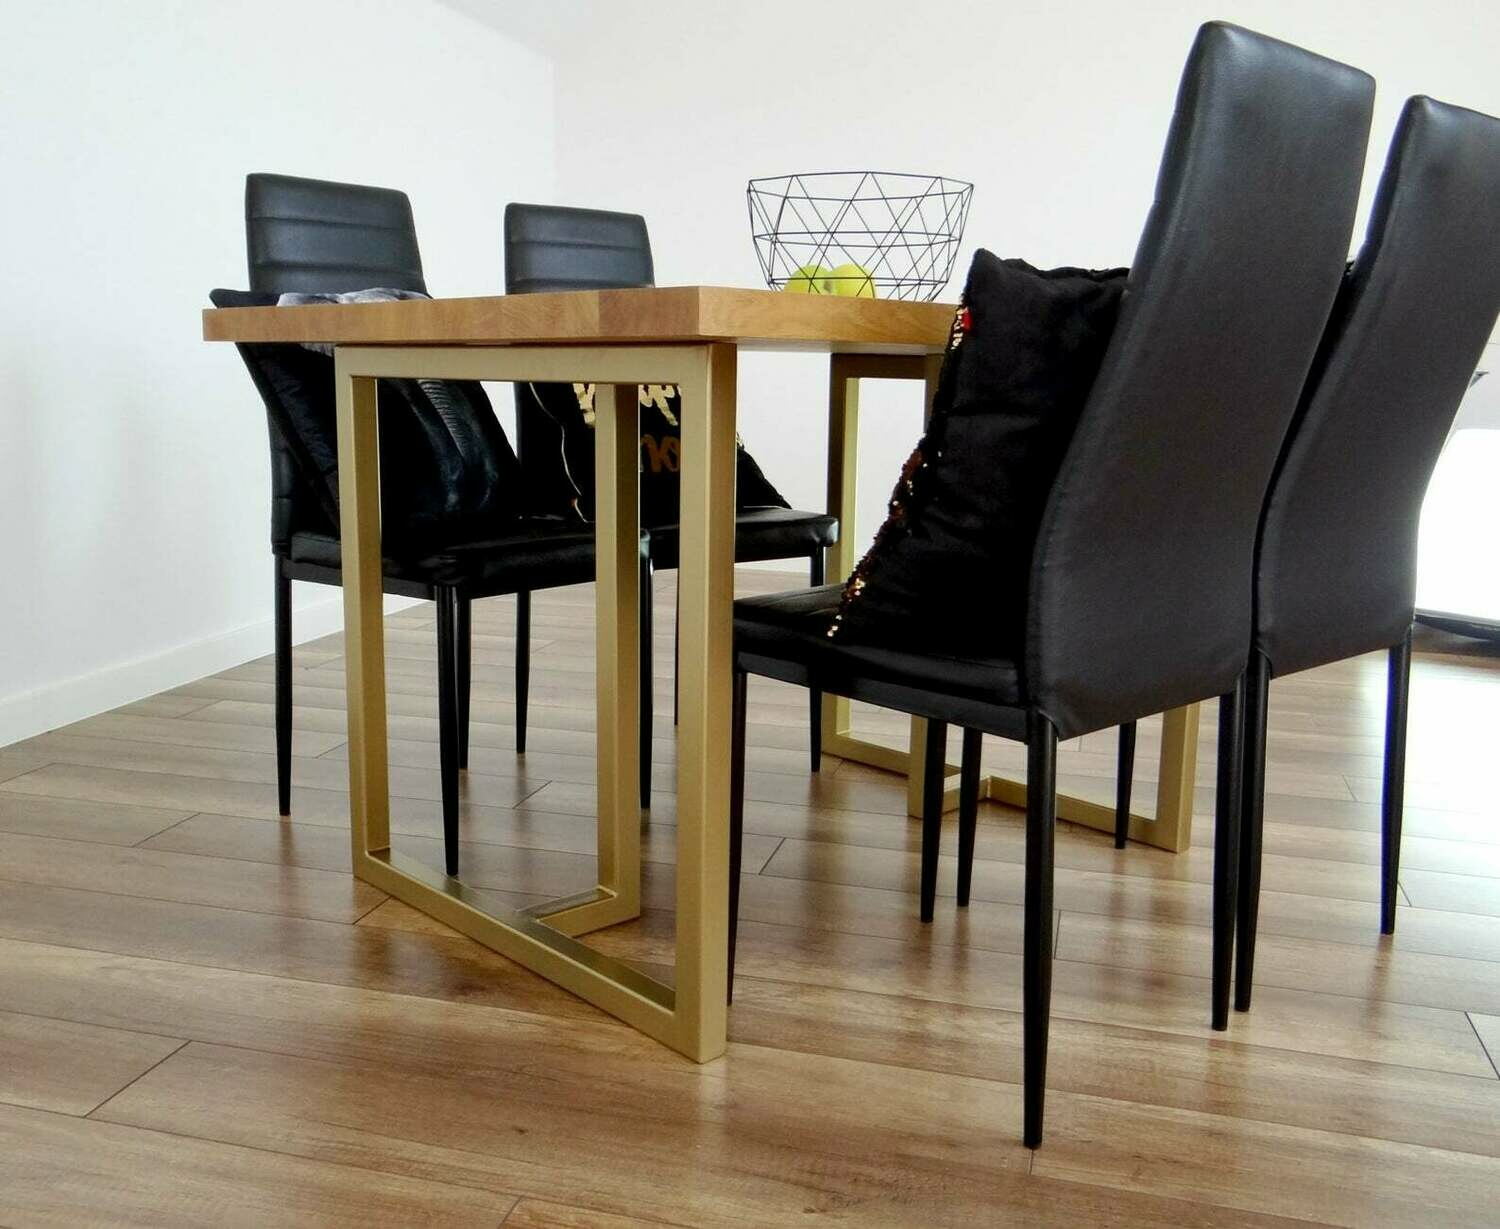 """Metal Dining Table Legs 28x28"""" (set of 2). T Shape Modern Steel Table Legs for Reclaimed Wood. Industrial, Gold Table Base. Iron Desk Legs. [D042]"""